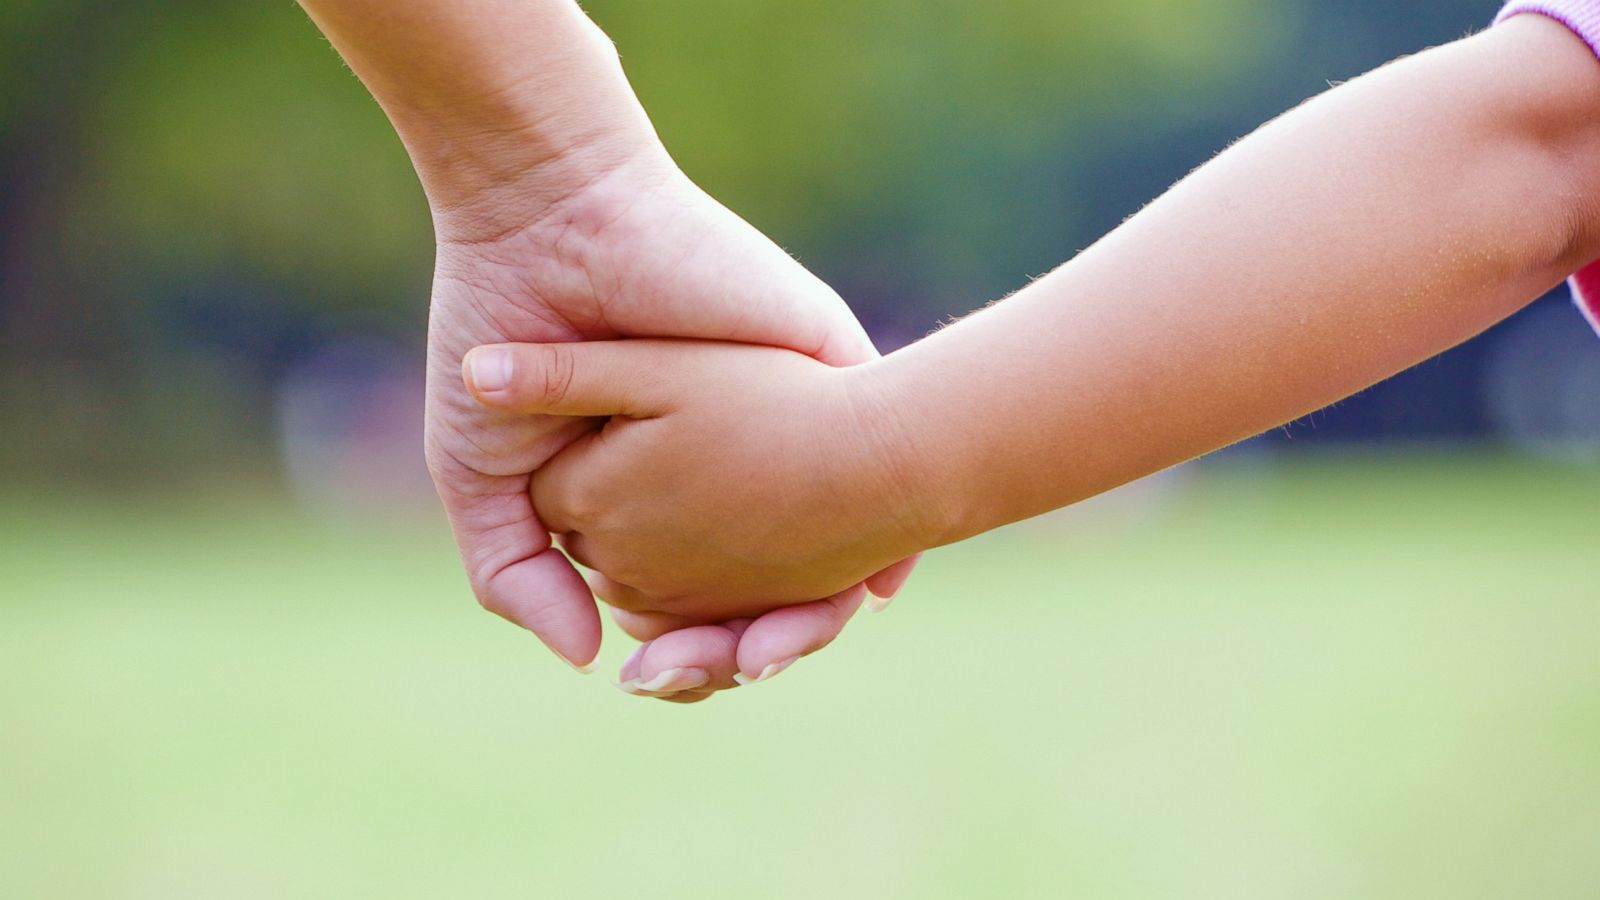 GTY_holding_hands_child_parent_sk_150427_16x9_1600